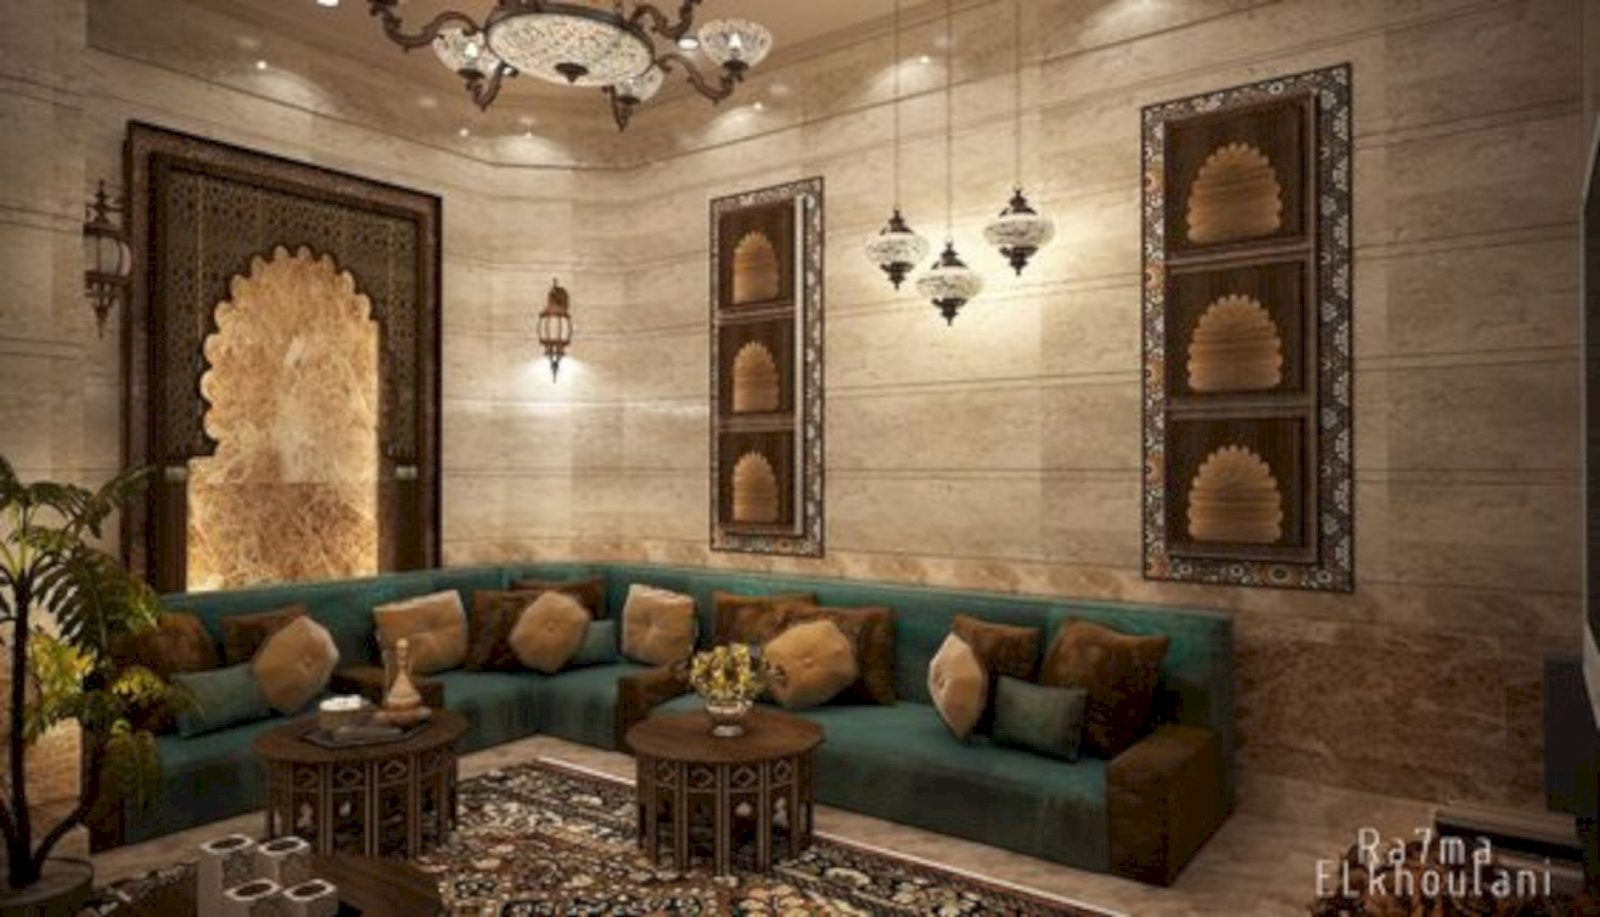 Moroccan Room Decoration Ideas